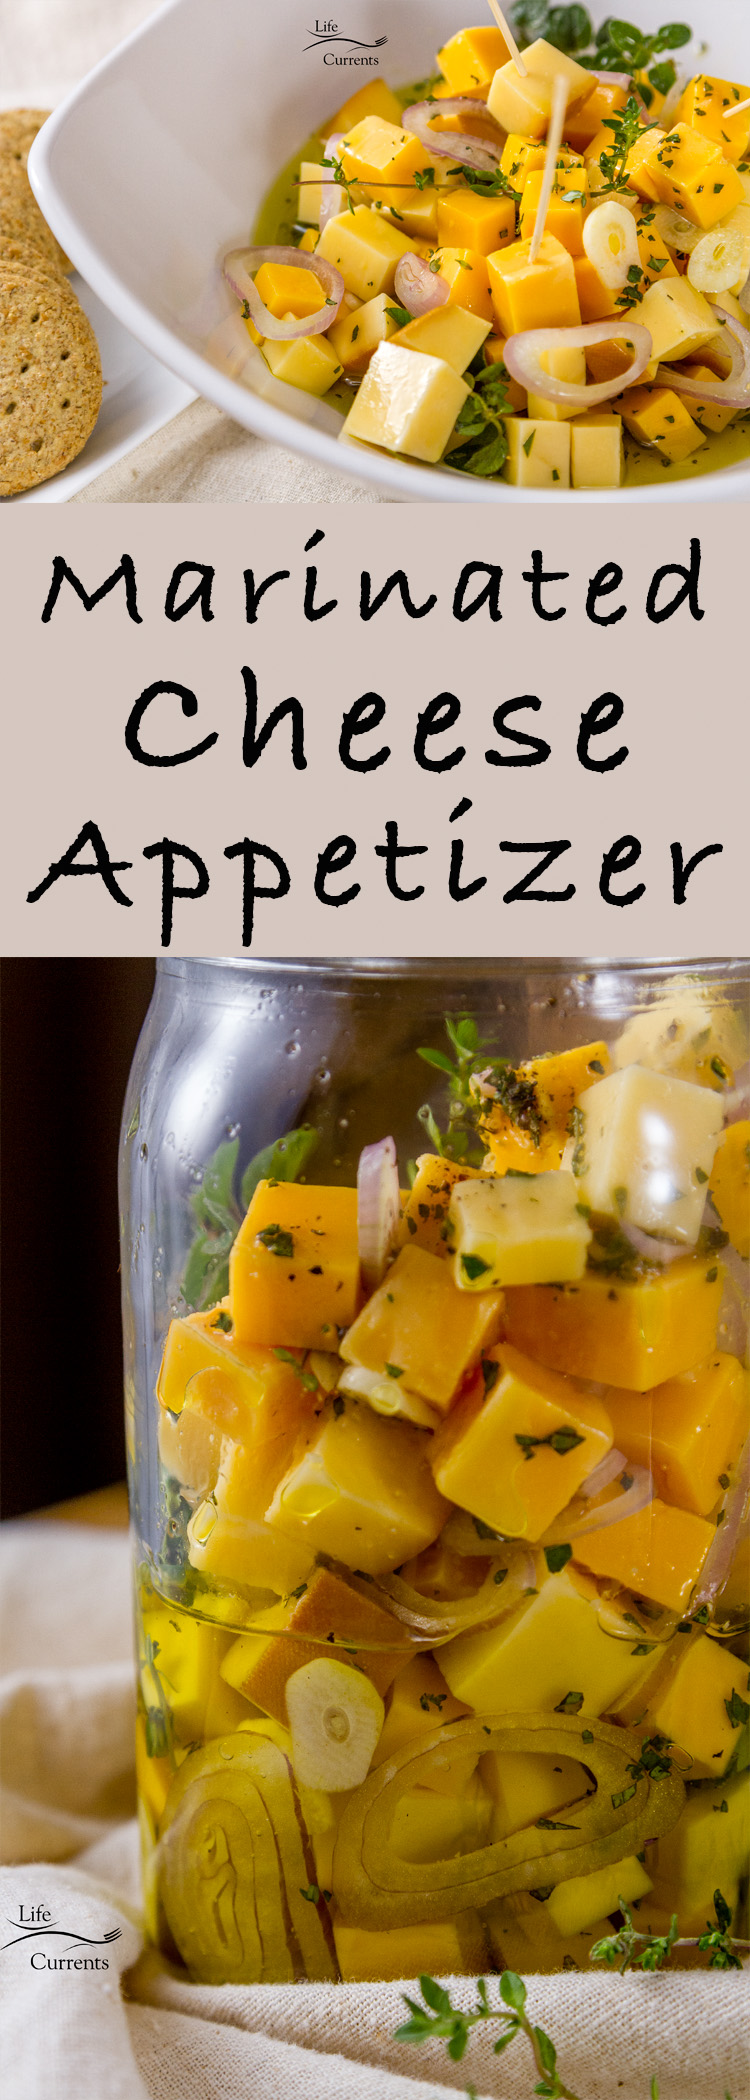 Marinated Cheese and Herbs Appetizer - perfect for holiday parties, new year's eve parties, or any potluck! #cheese #appetizer #party #easy